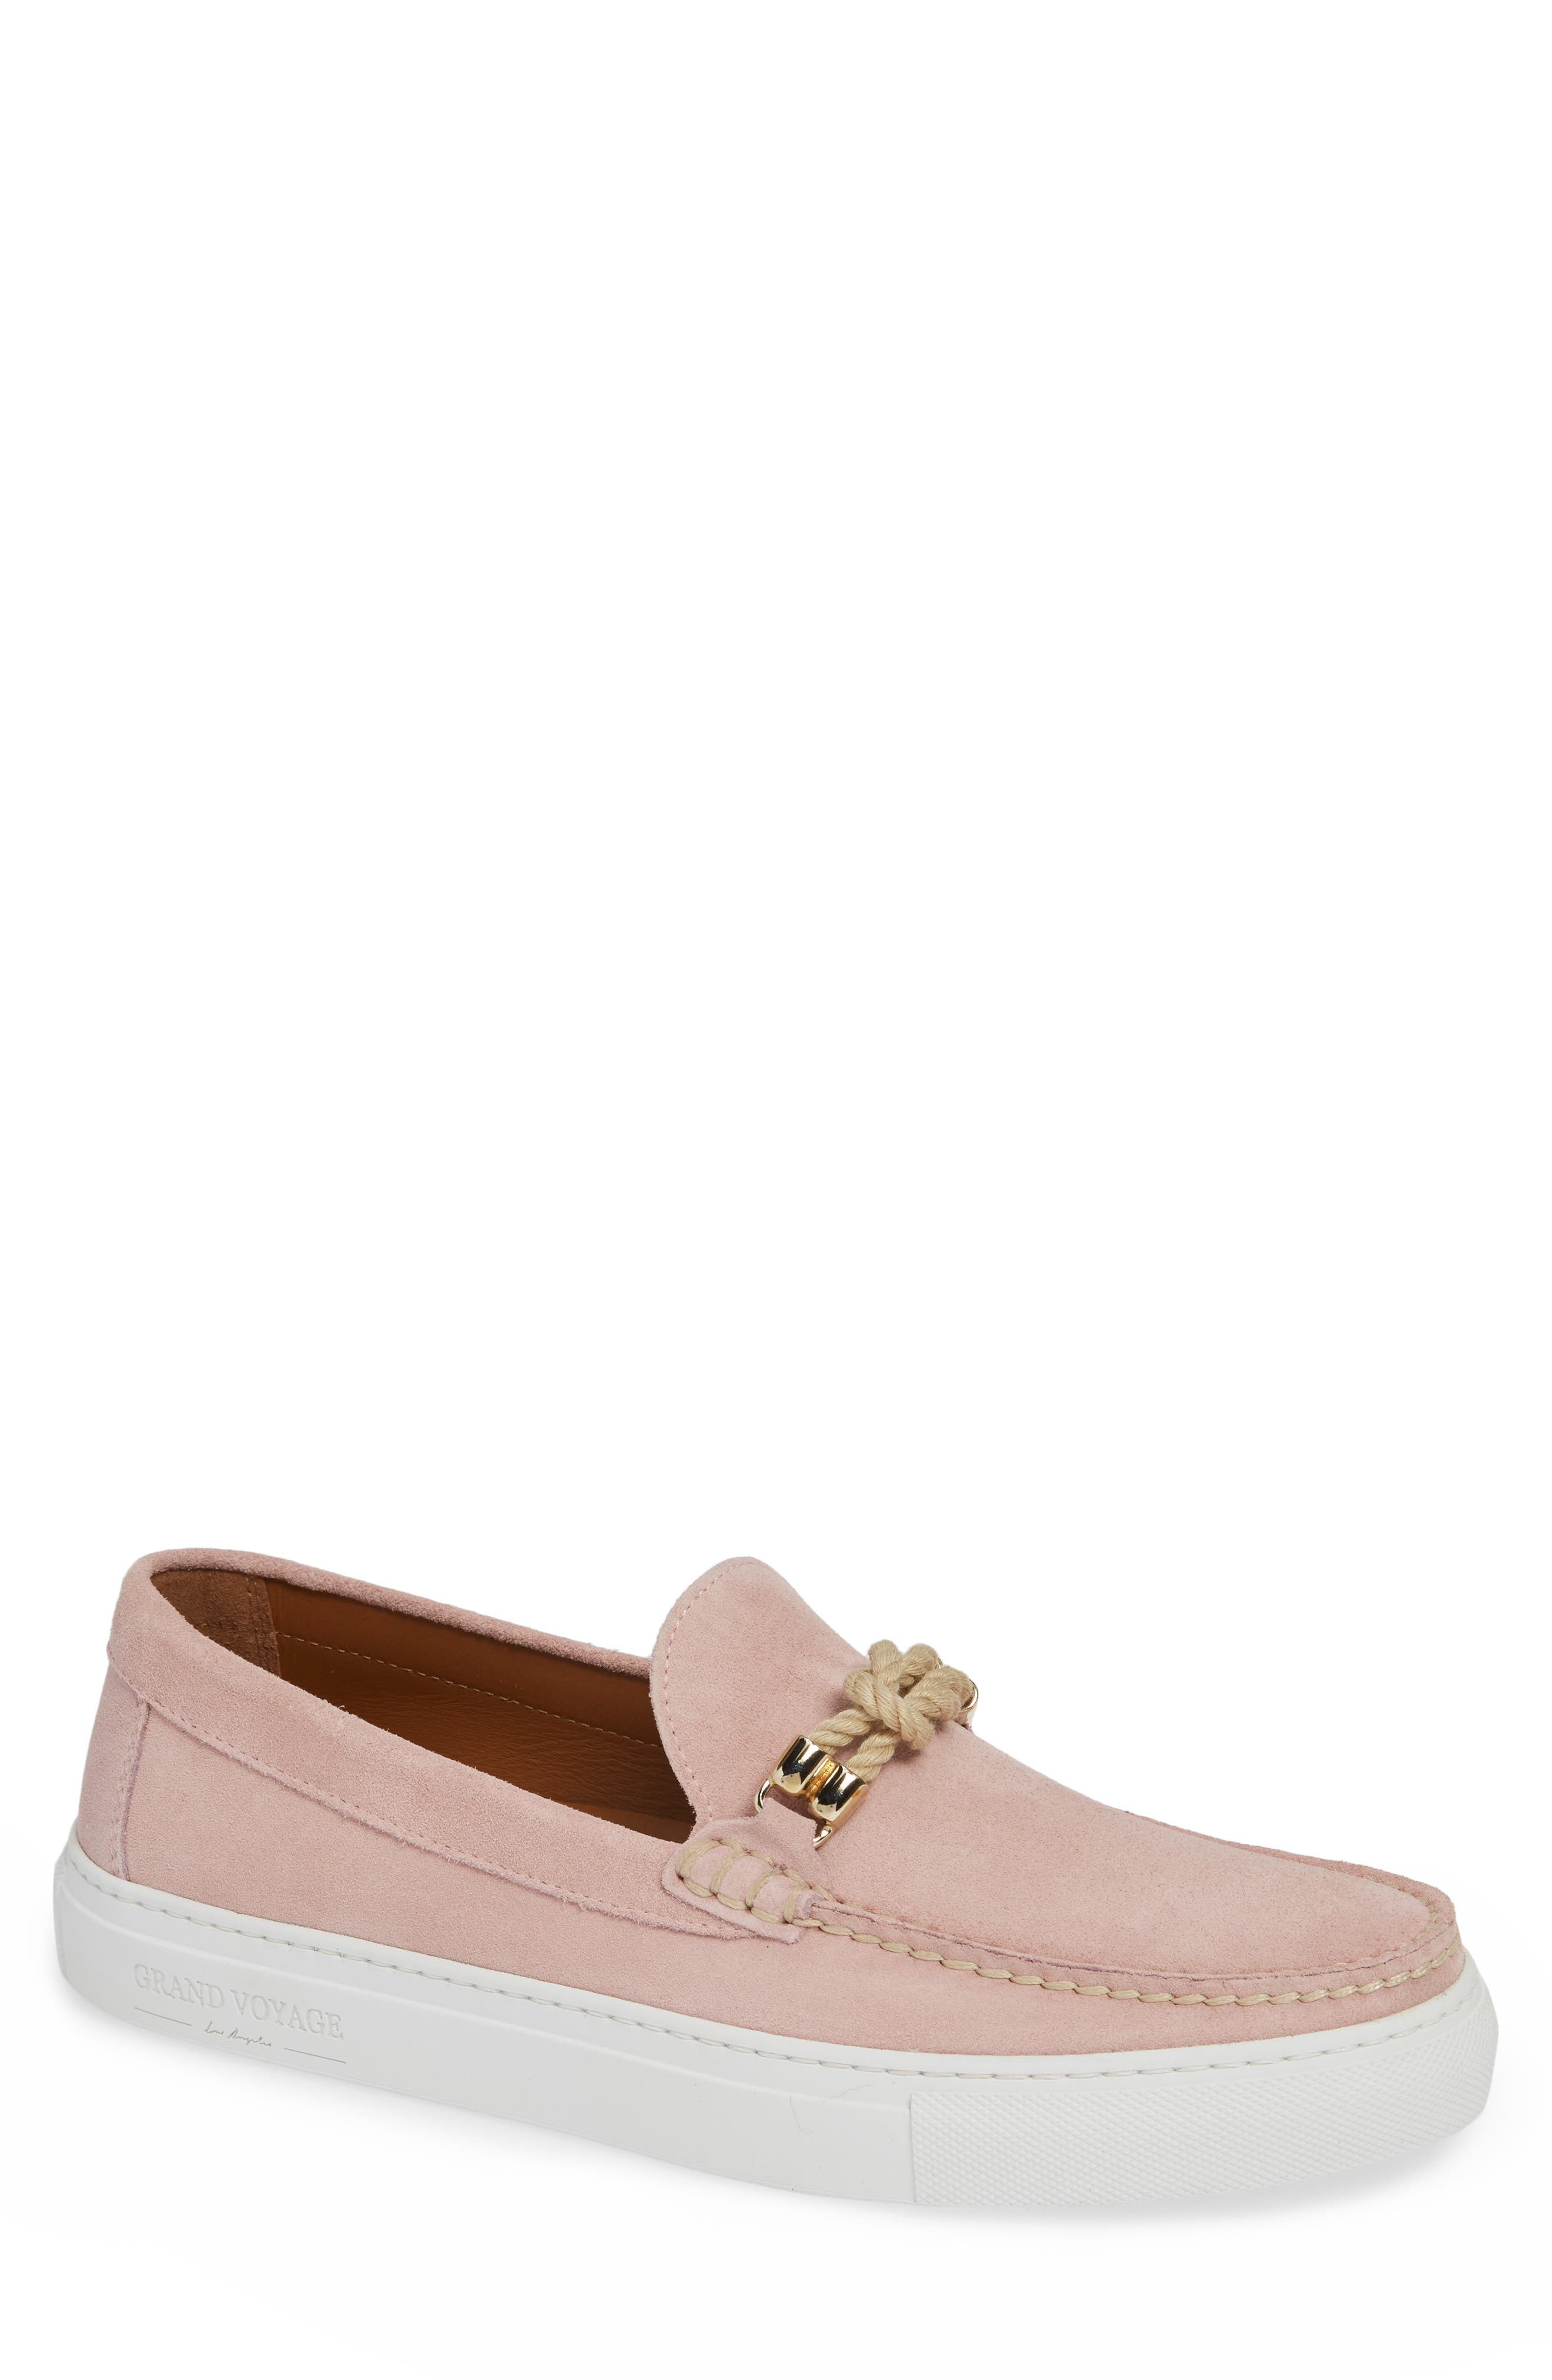 Britton Square Knot Loafer,                         Main,                         color, ROSE SUEDE